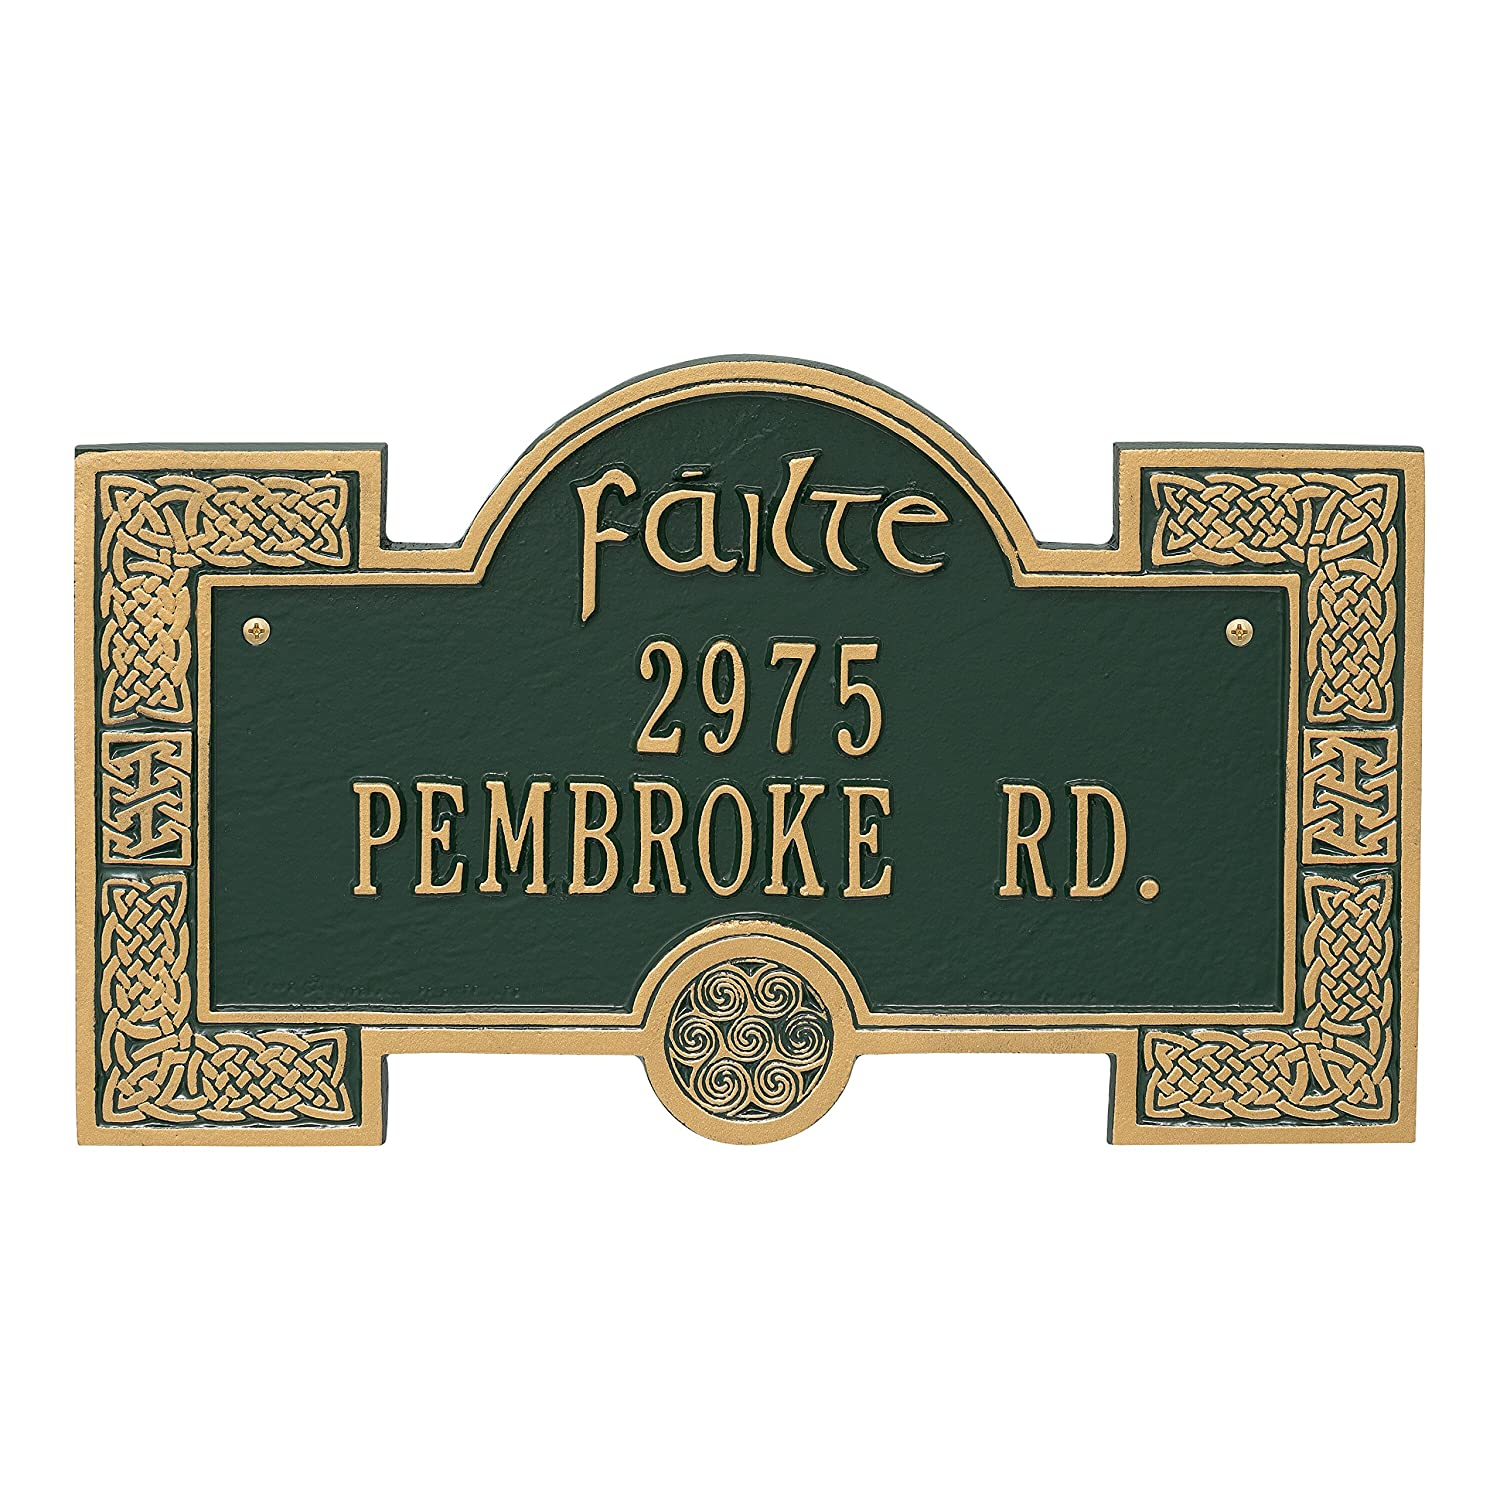 Whitehall Personalized Indoor/Outdoor Irish Cead Mile Failte Plaque Sign featuring The Gaelic Welcome, A Hundred Thousand Welcomes (Antique Copper) Whitehall Products